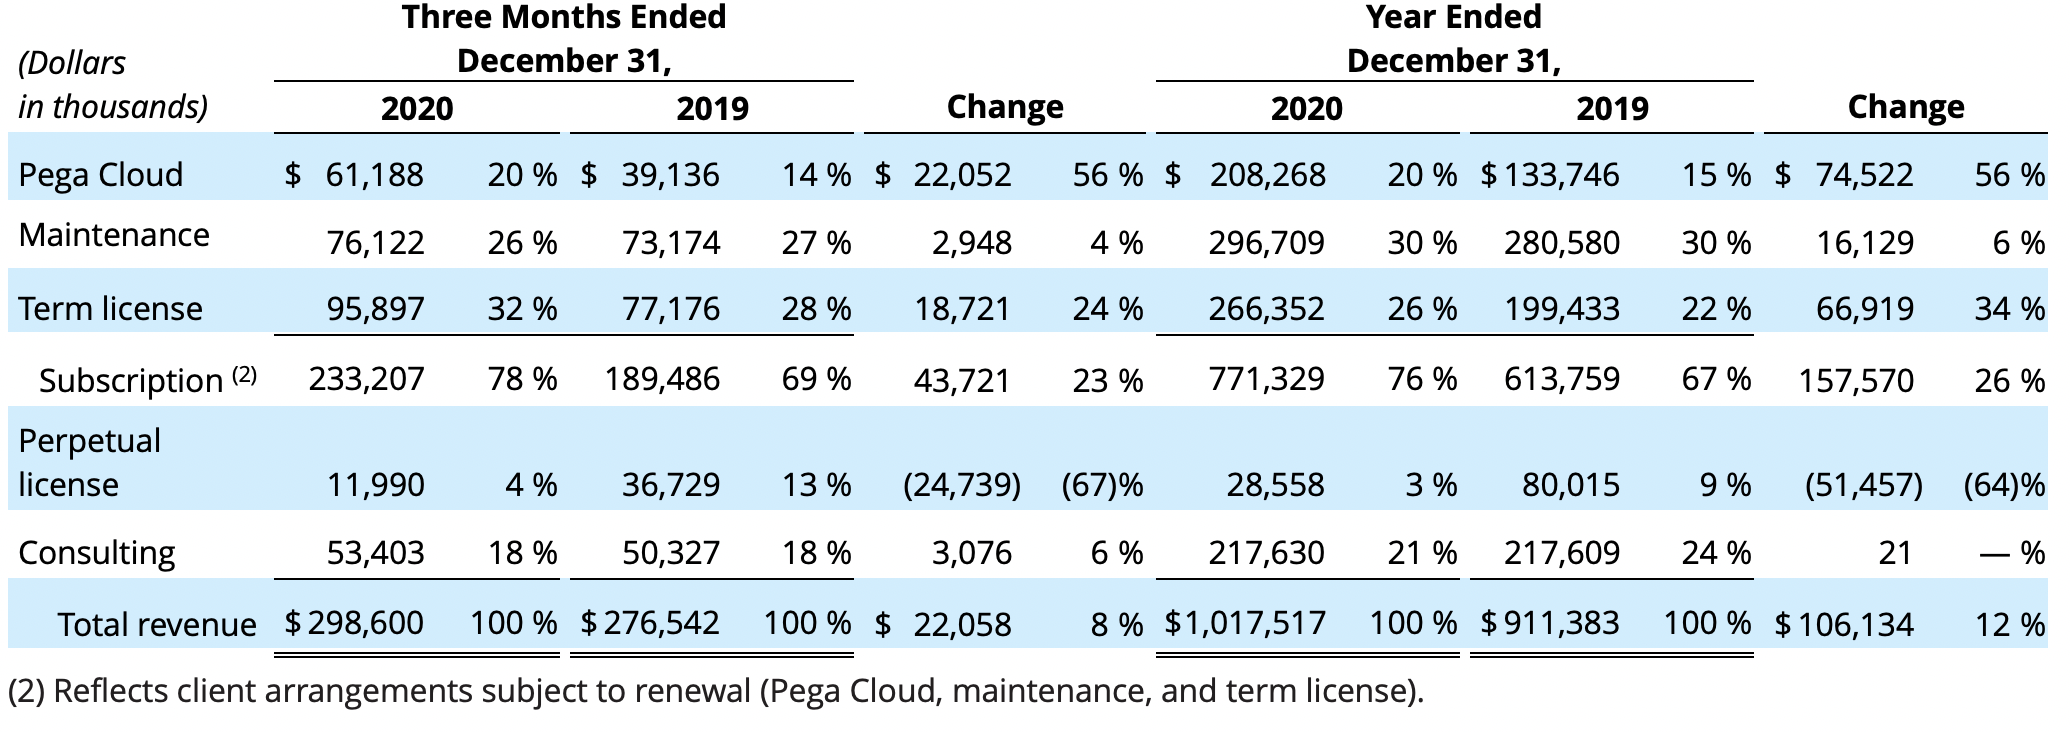 Pegasystems Q4 2020 earnings